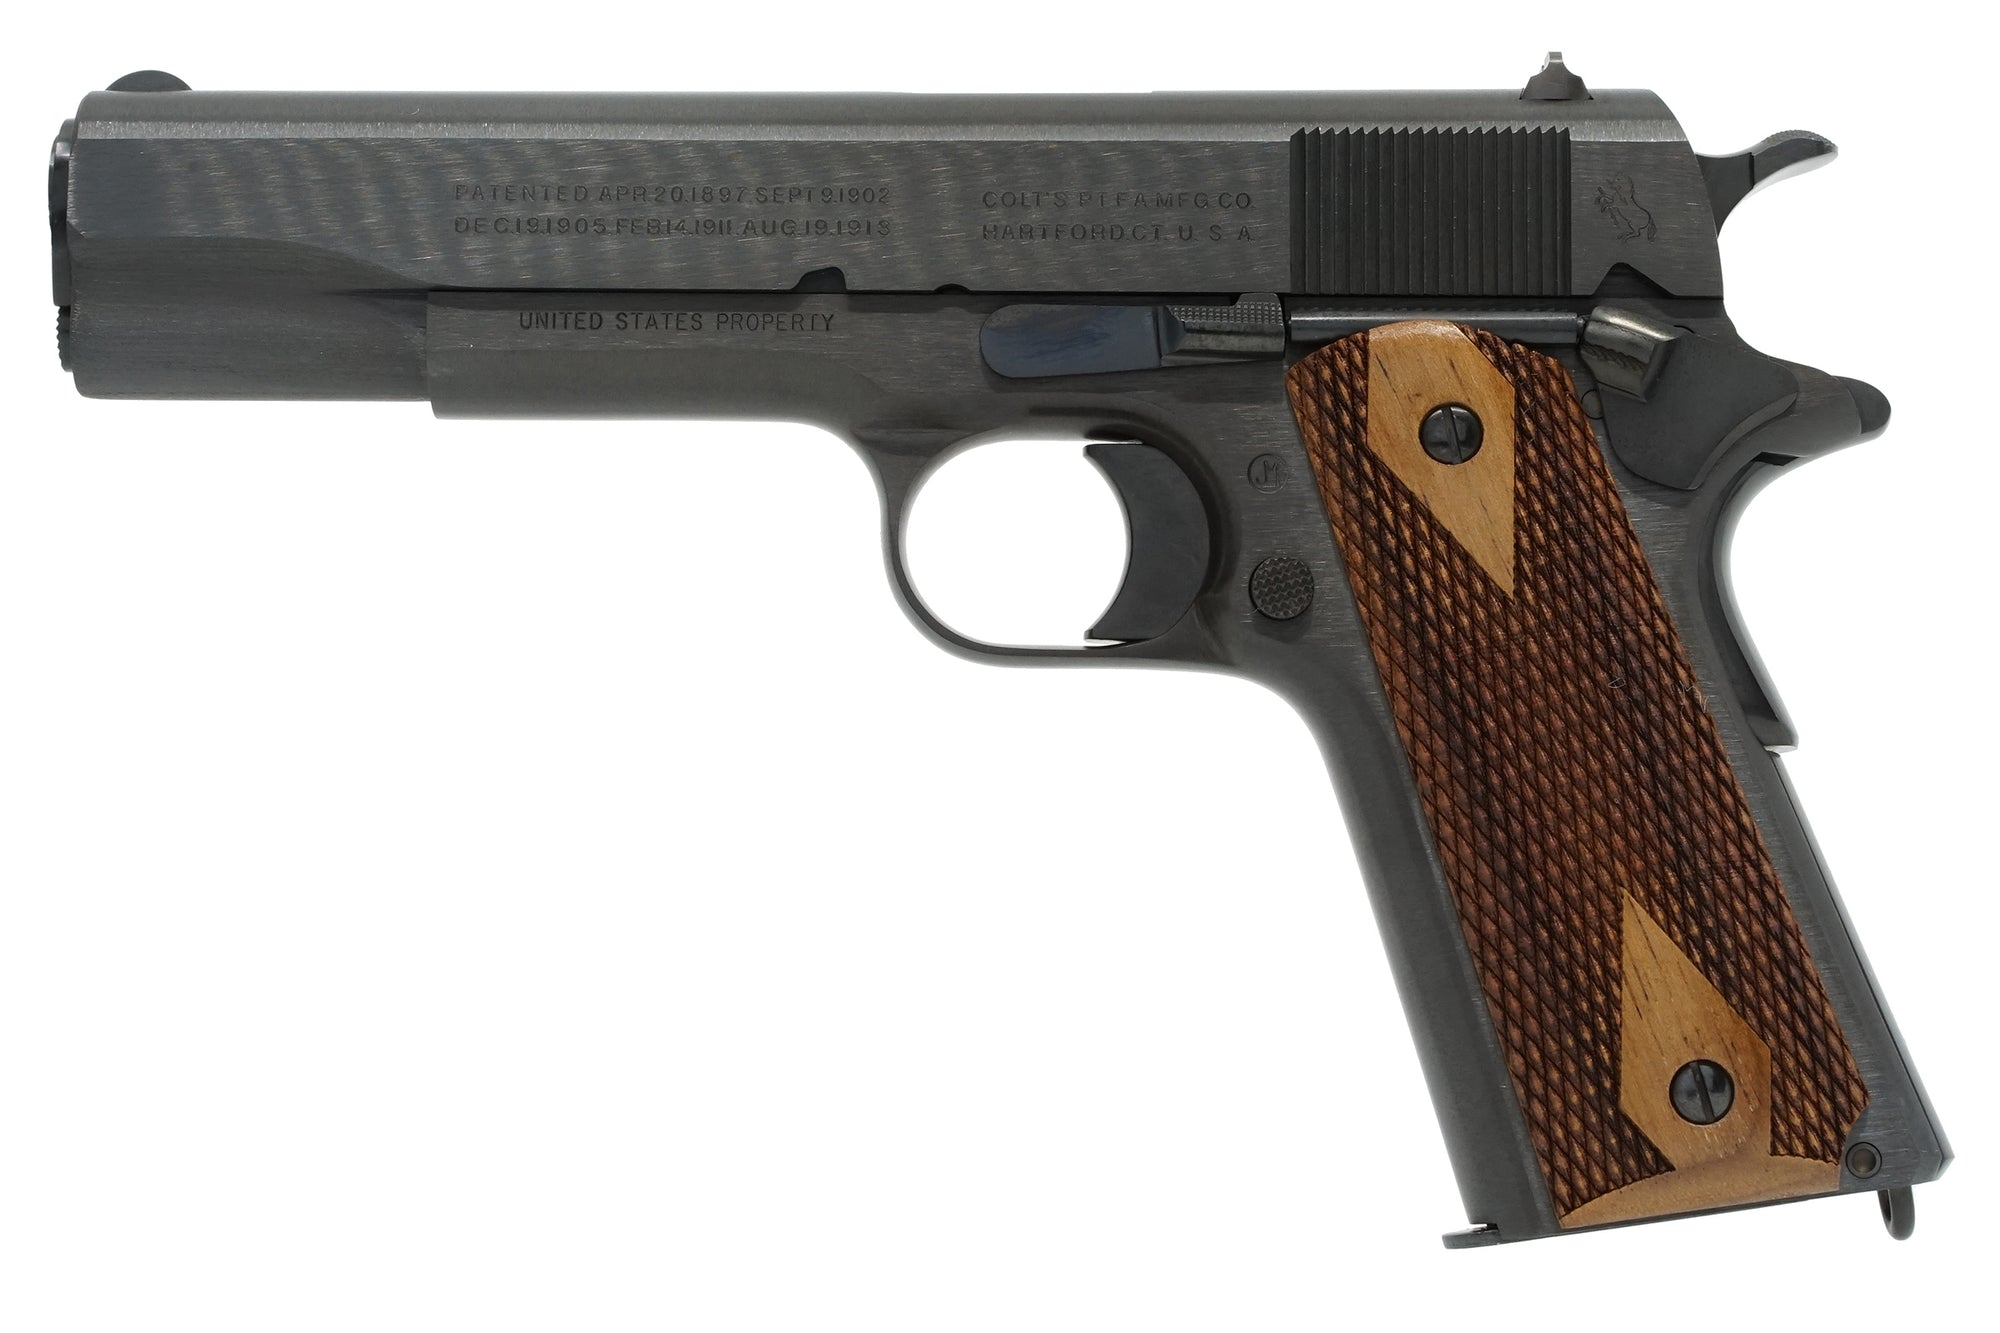 Colt M1911 45ACP SN:3991WWI MFG:2003 - WWI Reproduction